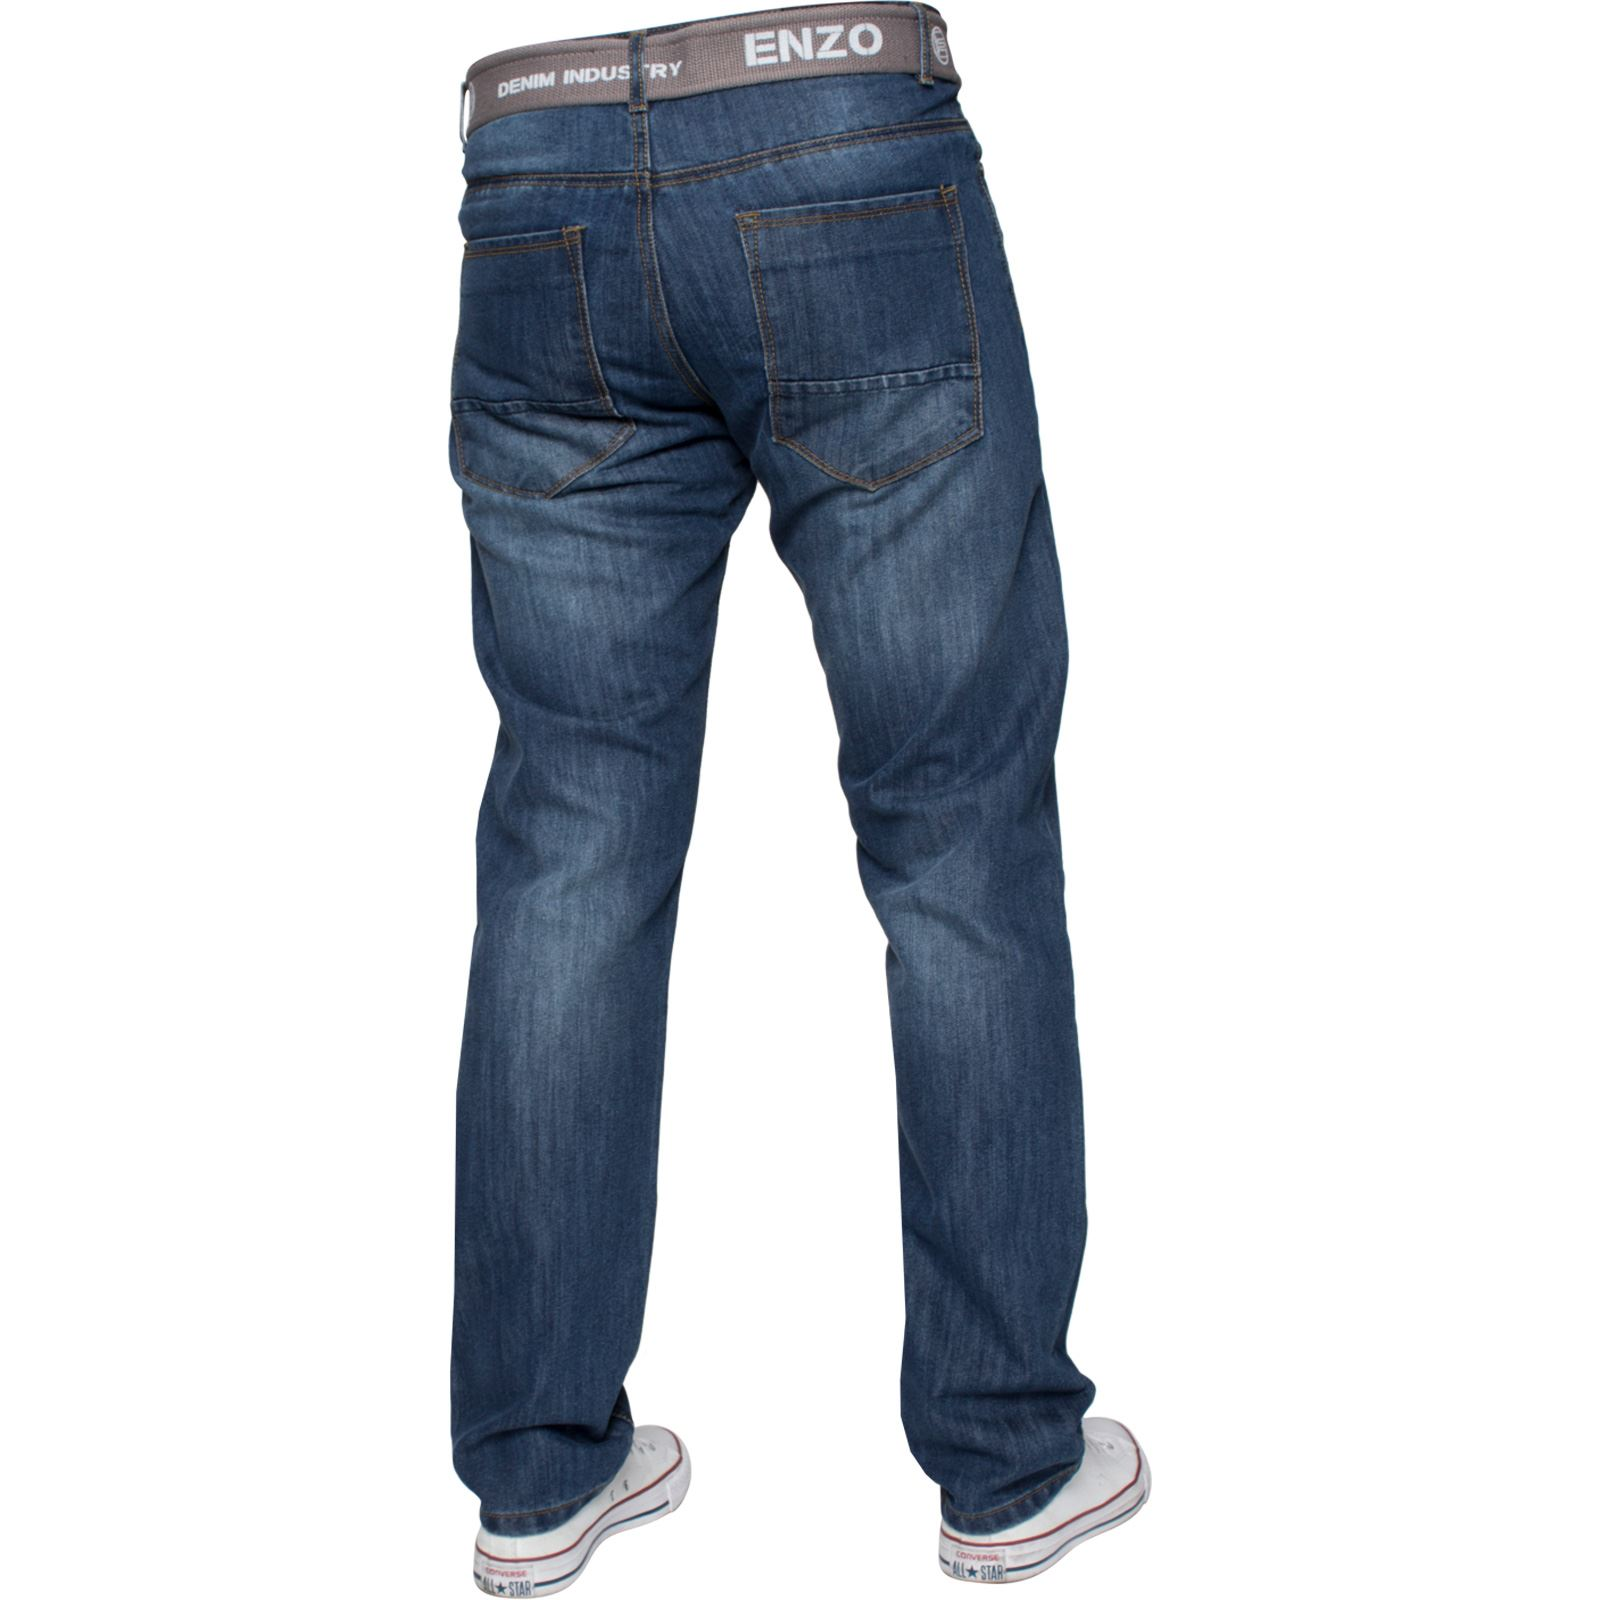 Enzo-Mens-Designer-Jeans-Regular-Fit-Denim-Pants-Big-Tall-All-Waist-Sizes thumbnail 7